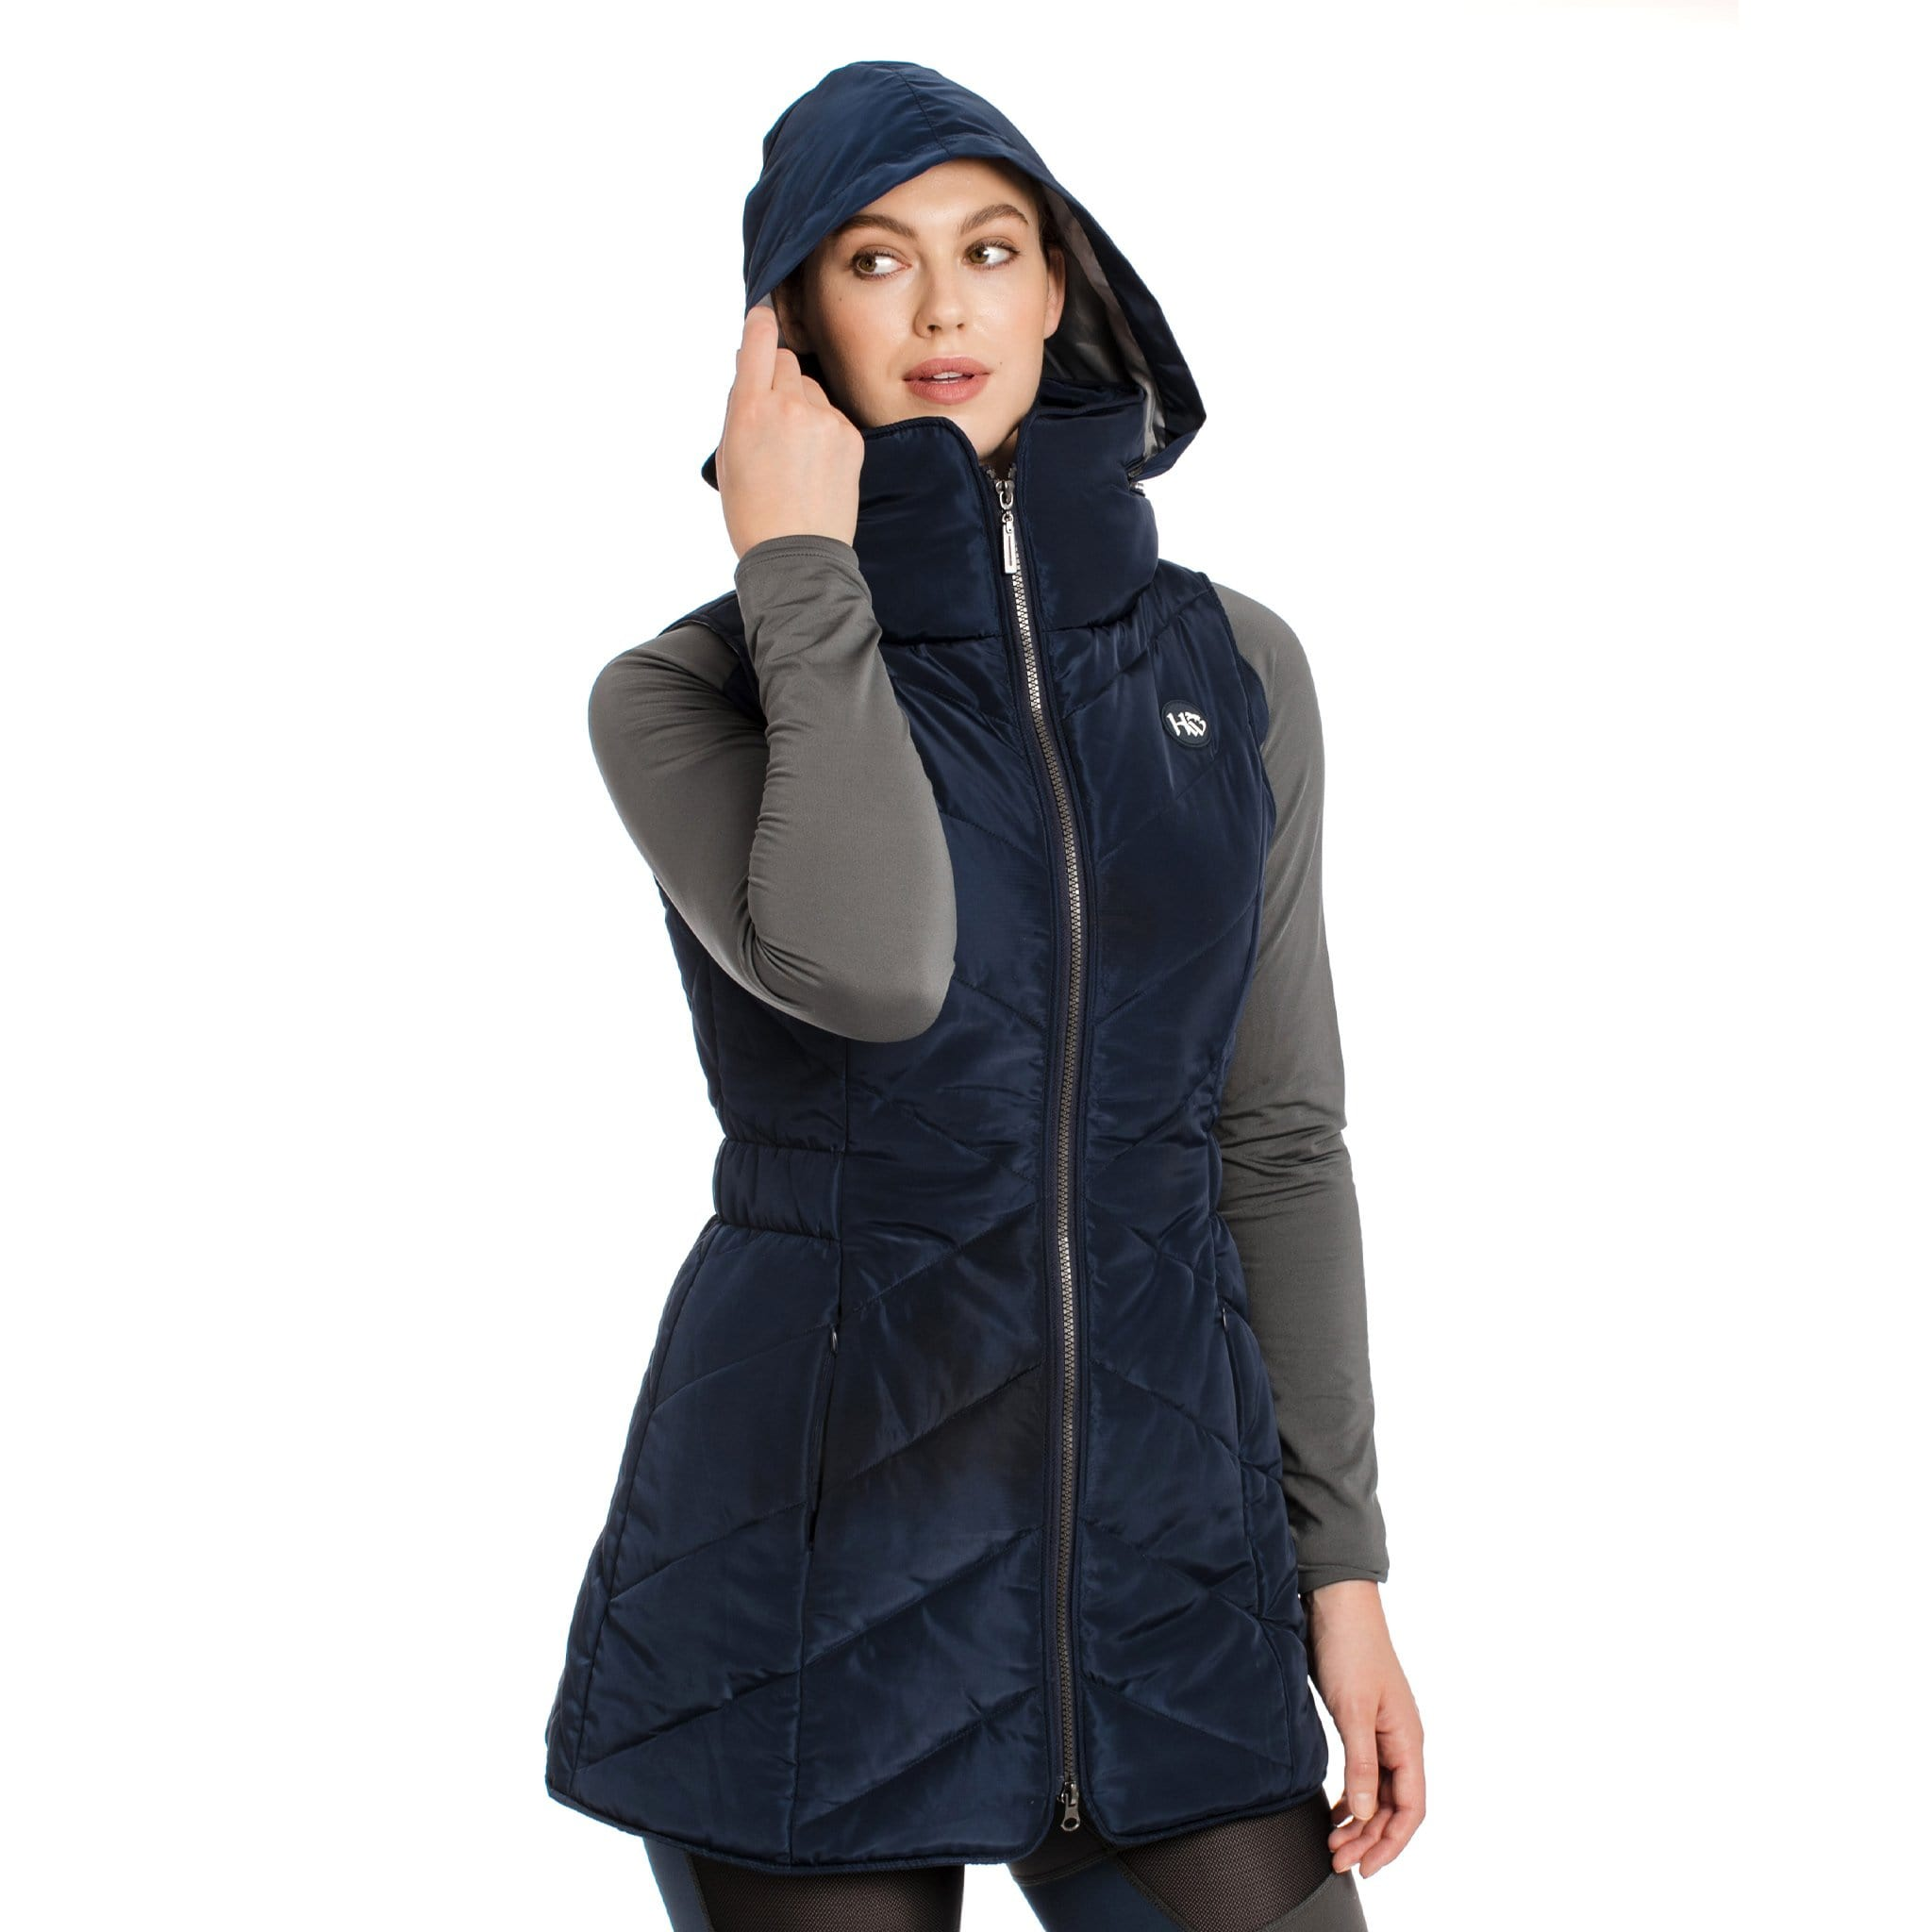 Horseware Longline Padded Gilet CENEVL Navy On Model Front View With Hood and Zip Up